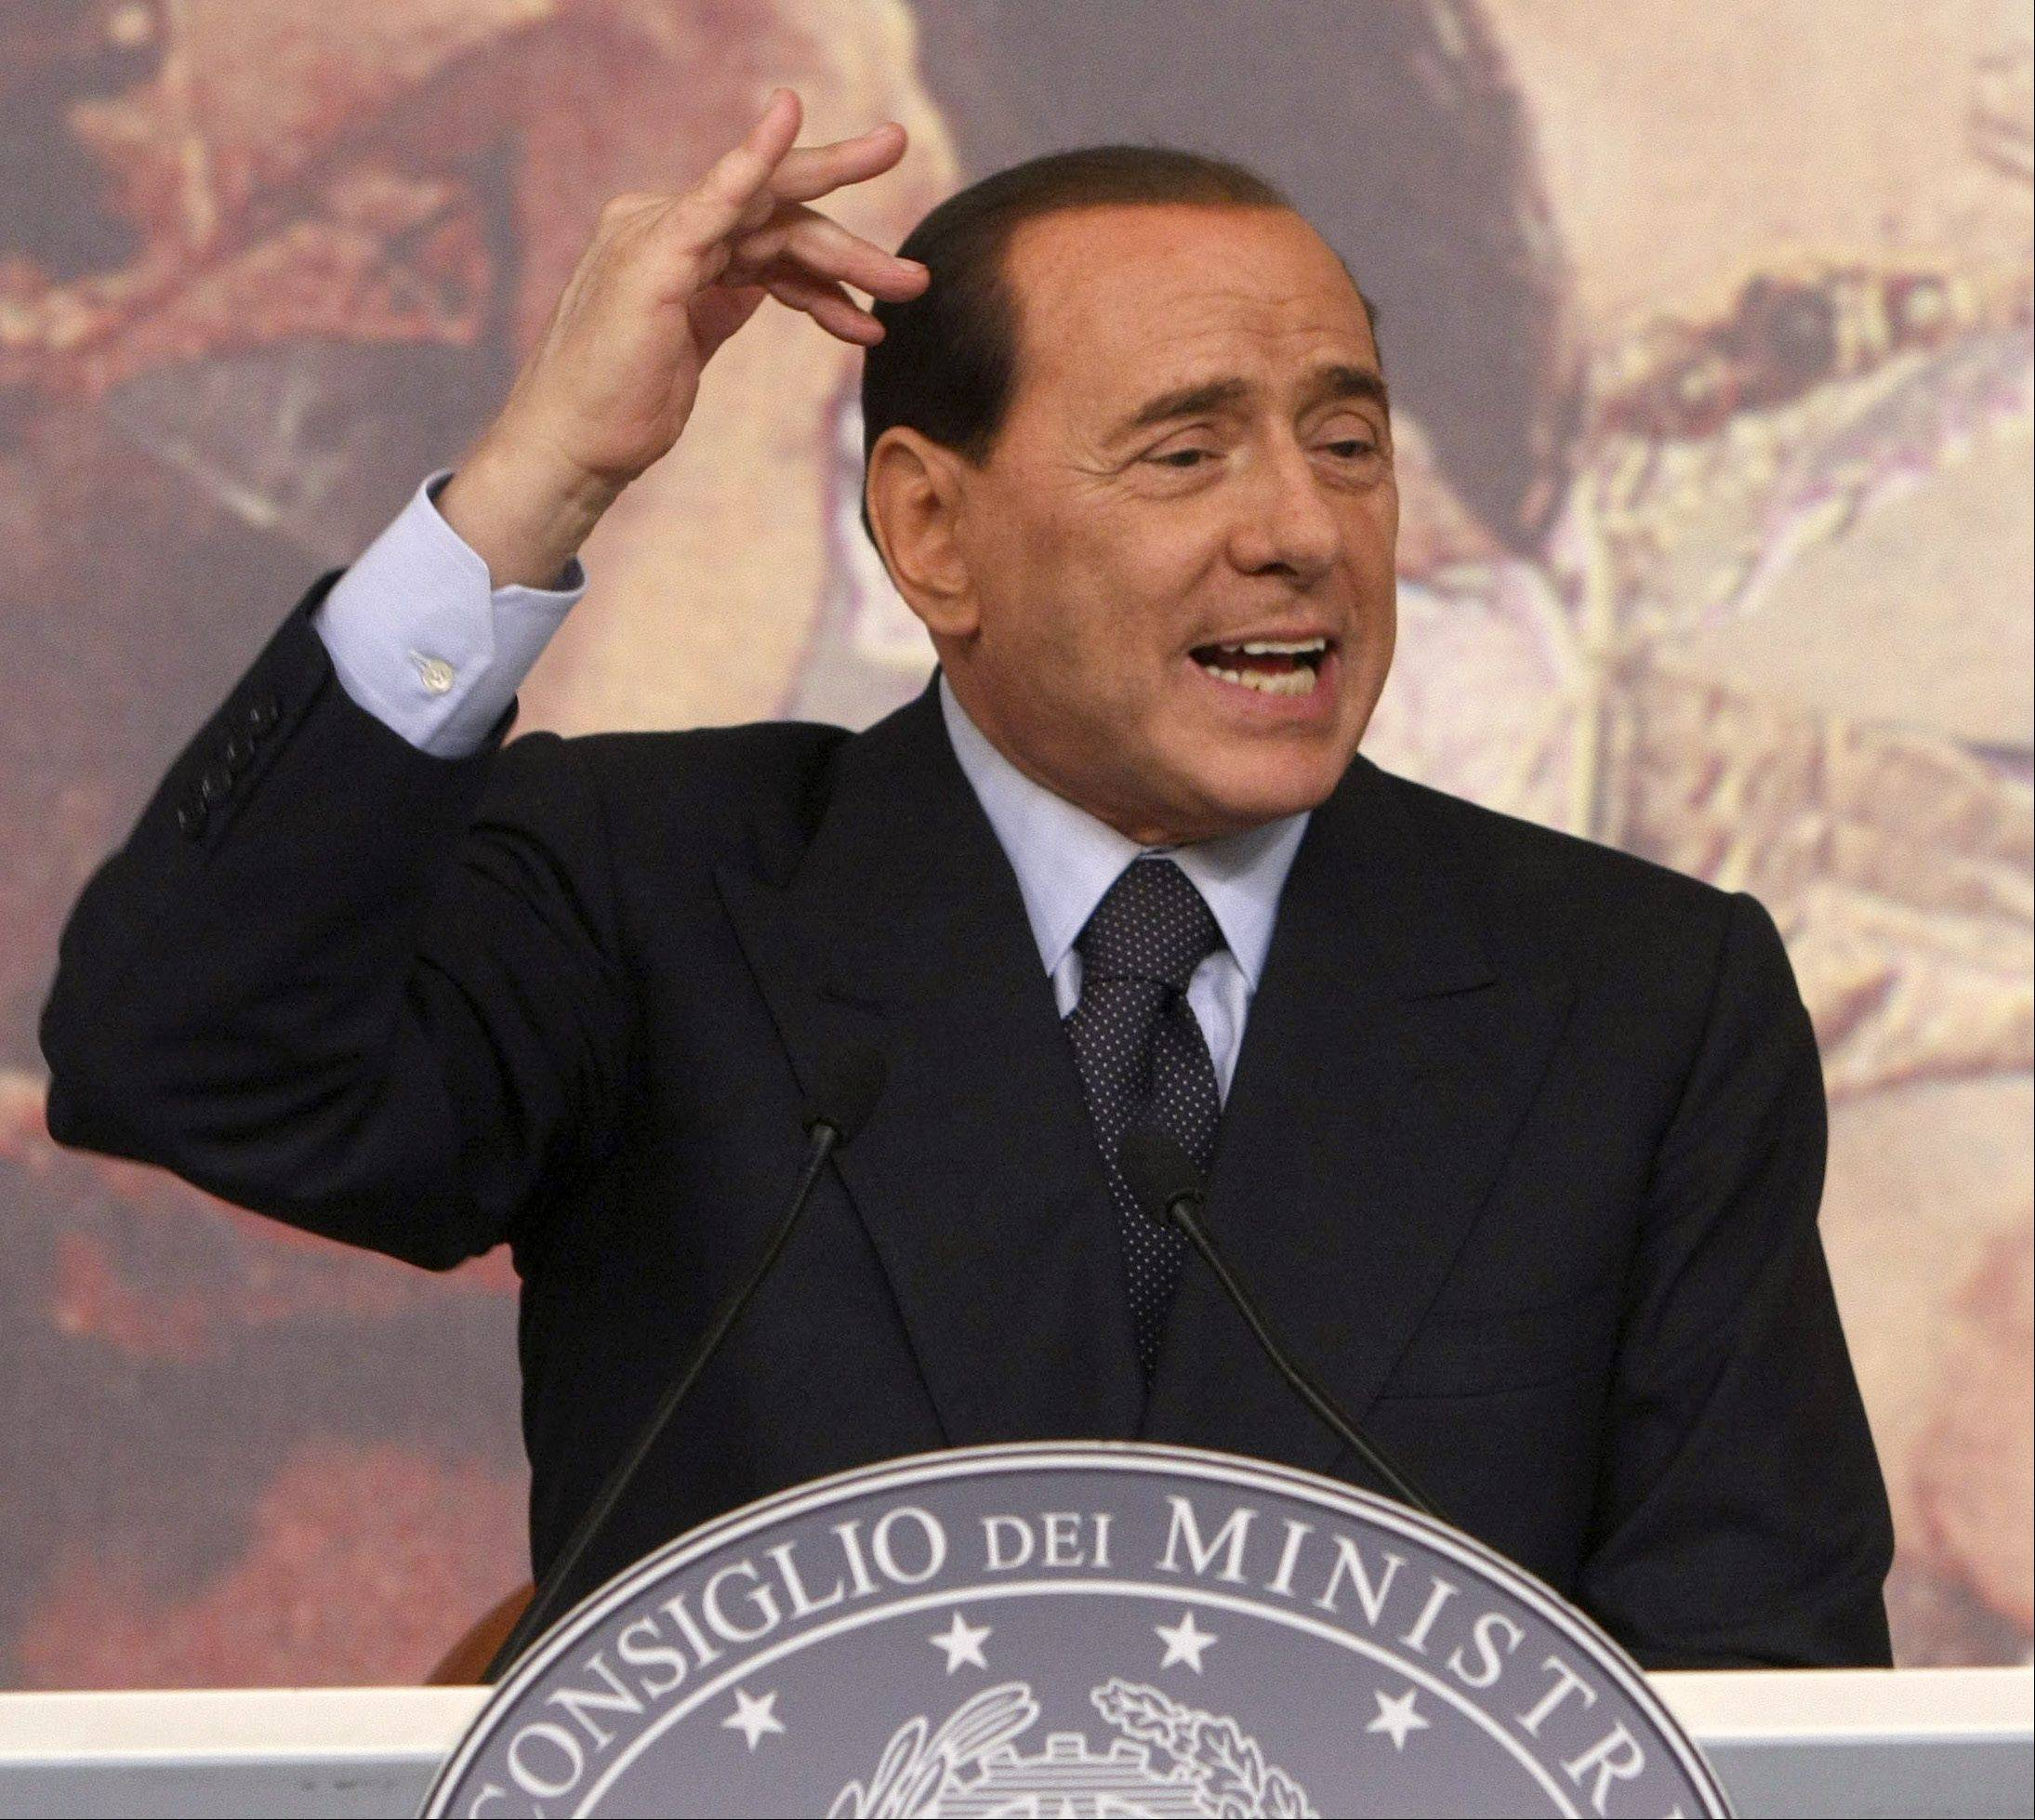 Former Italian Premier Silvio Berlusconi praised the fascist regime of dictator Benito Mussolini on Sunday as he attended a ceremony to mark Holocaust Remembrance Day.